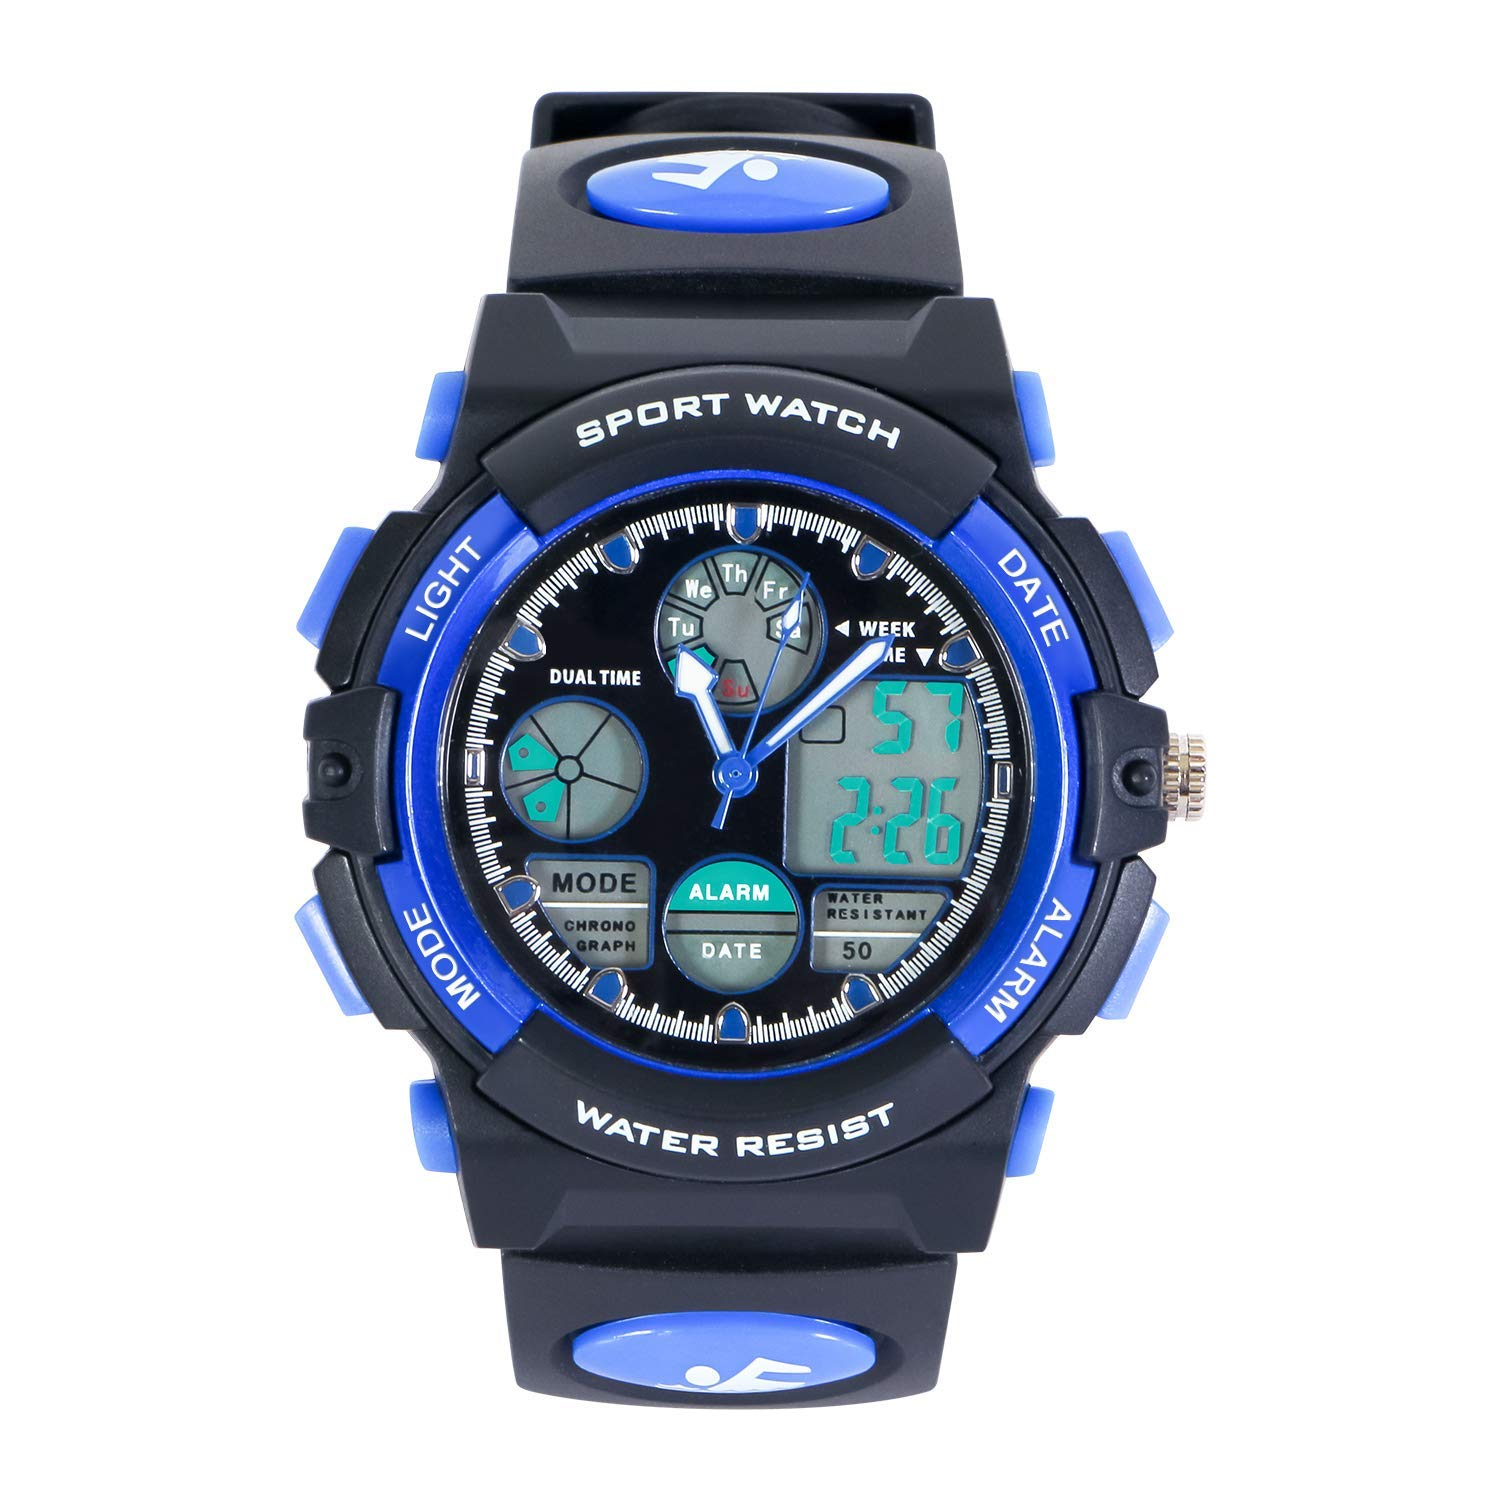 HIwatch Youth Watches Boys Girls Water-Resistant Sports Digital Wrist Watch for Teenager Students, Blue by Hiwatch